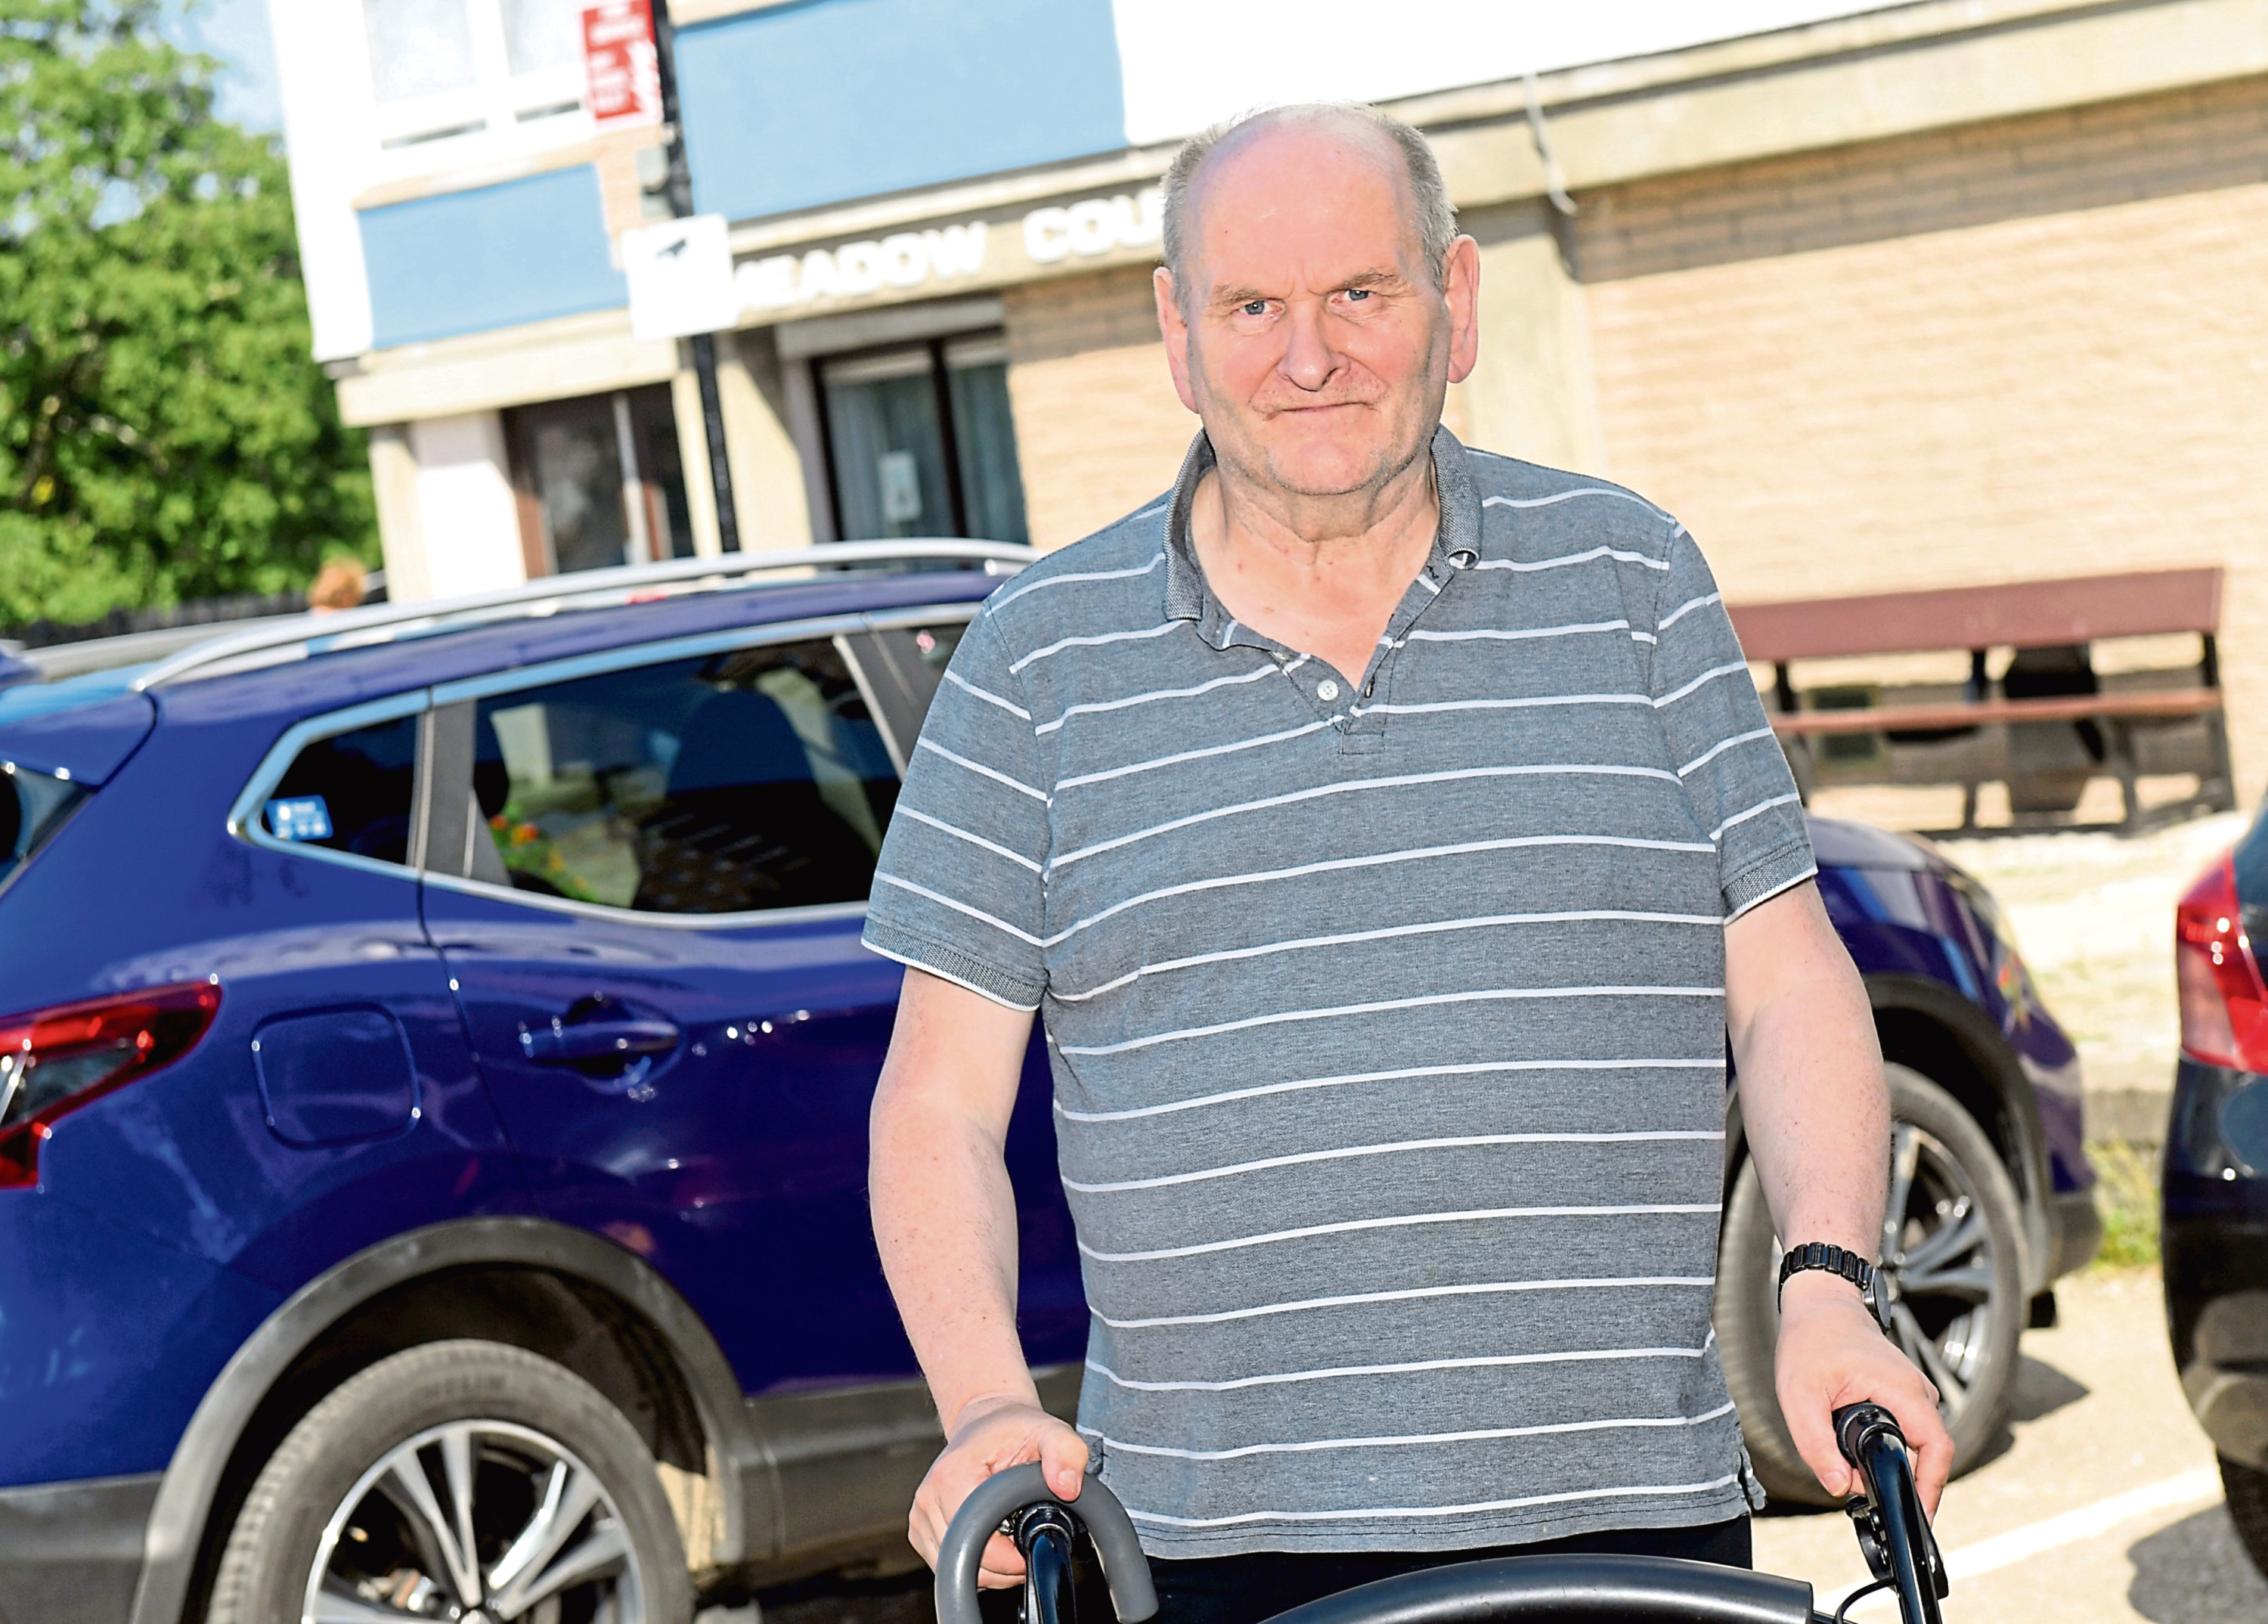 Peter Forbes, who suffers from Parkinson's, was left waiting at the roadside